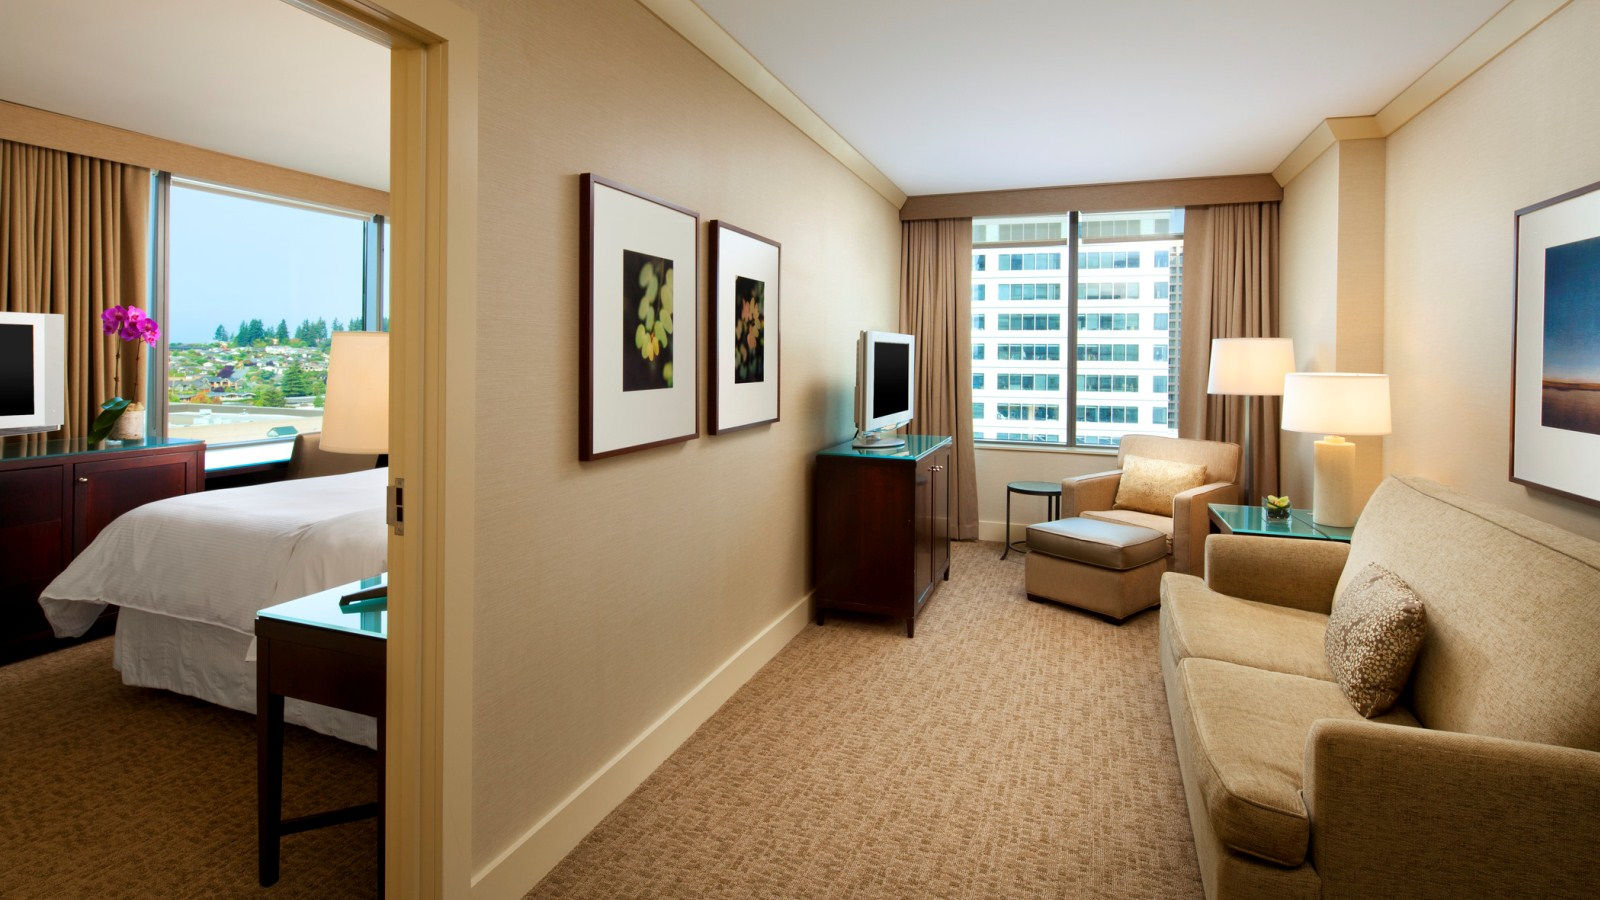 An Executive Suite at the Westin Bellevue - complete with Lake Washington Views and a parlour.